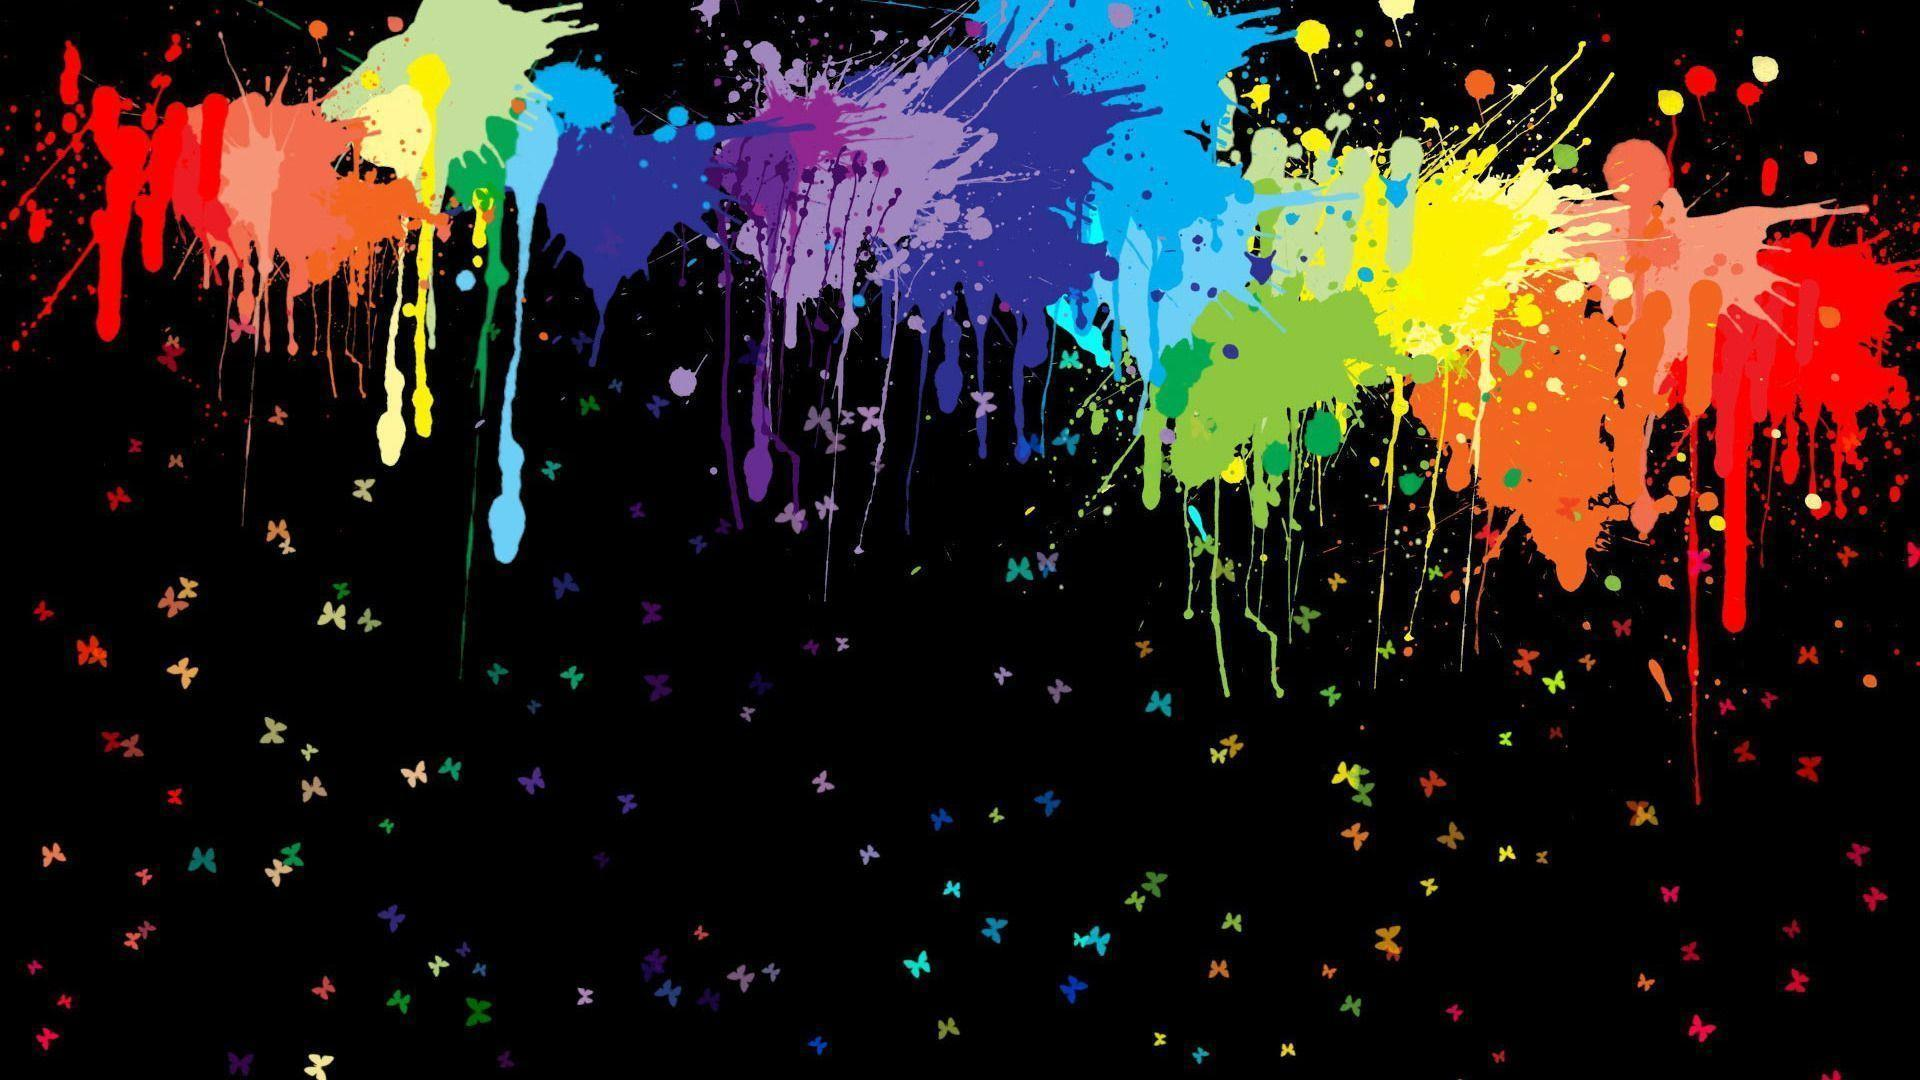 Colorful Paint Splashes Abstract Mobile Wallpaper X